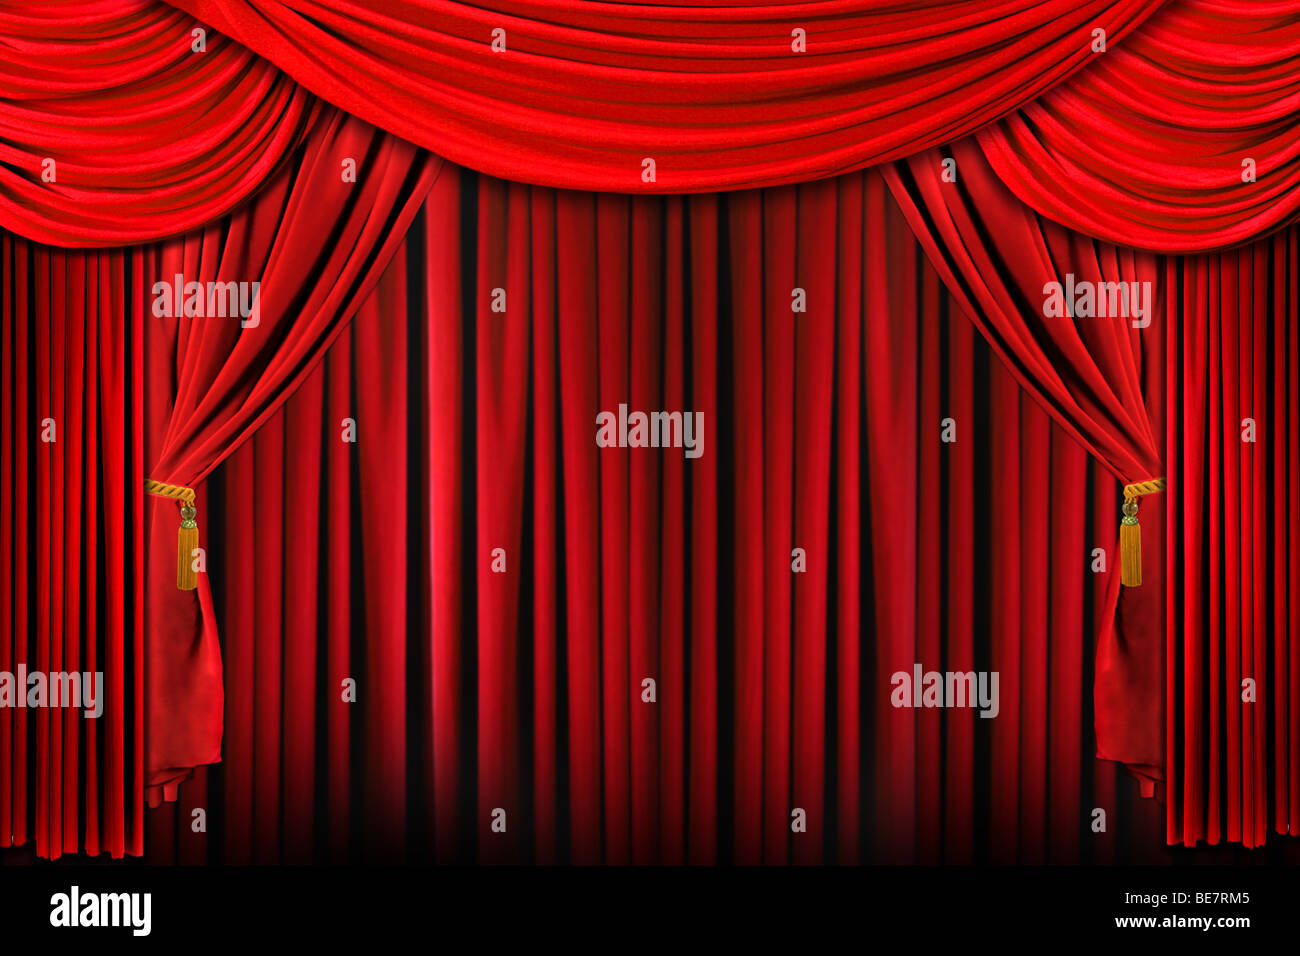 Curtains from a Stage in Bright Red Dramatic Lighting - Stock Image